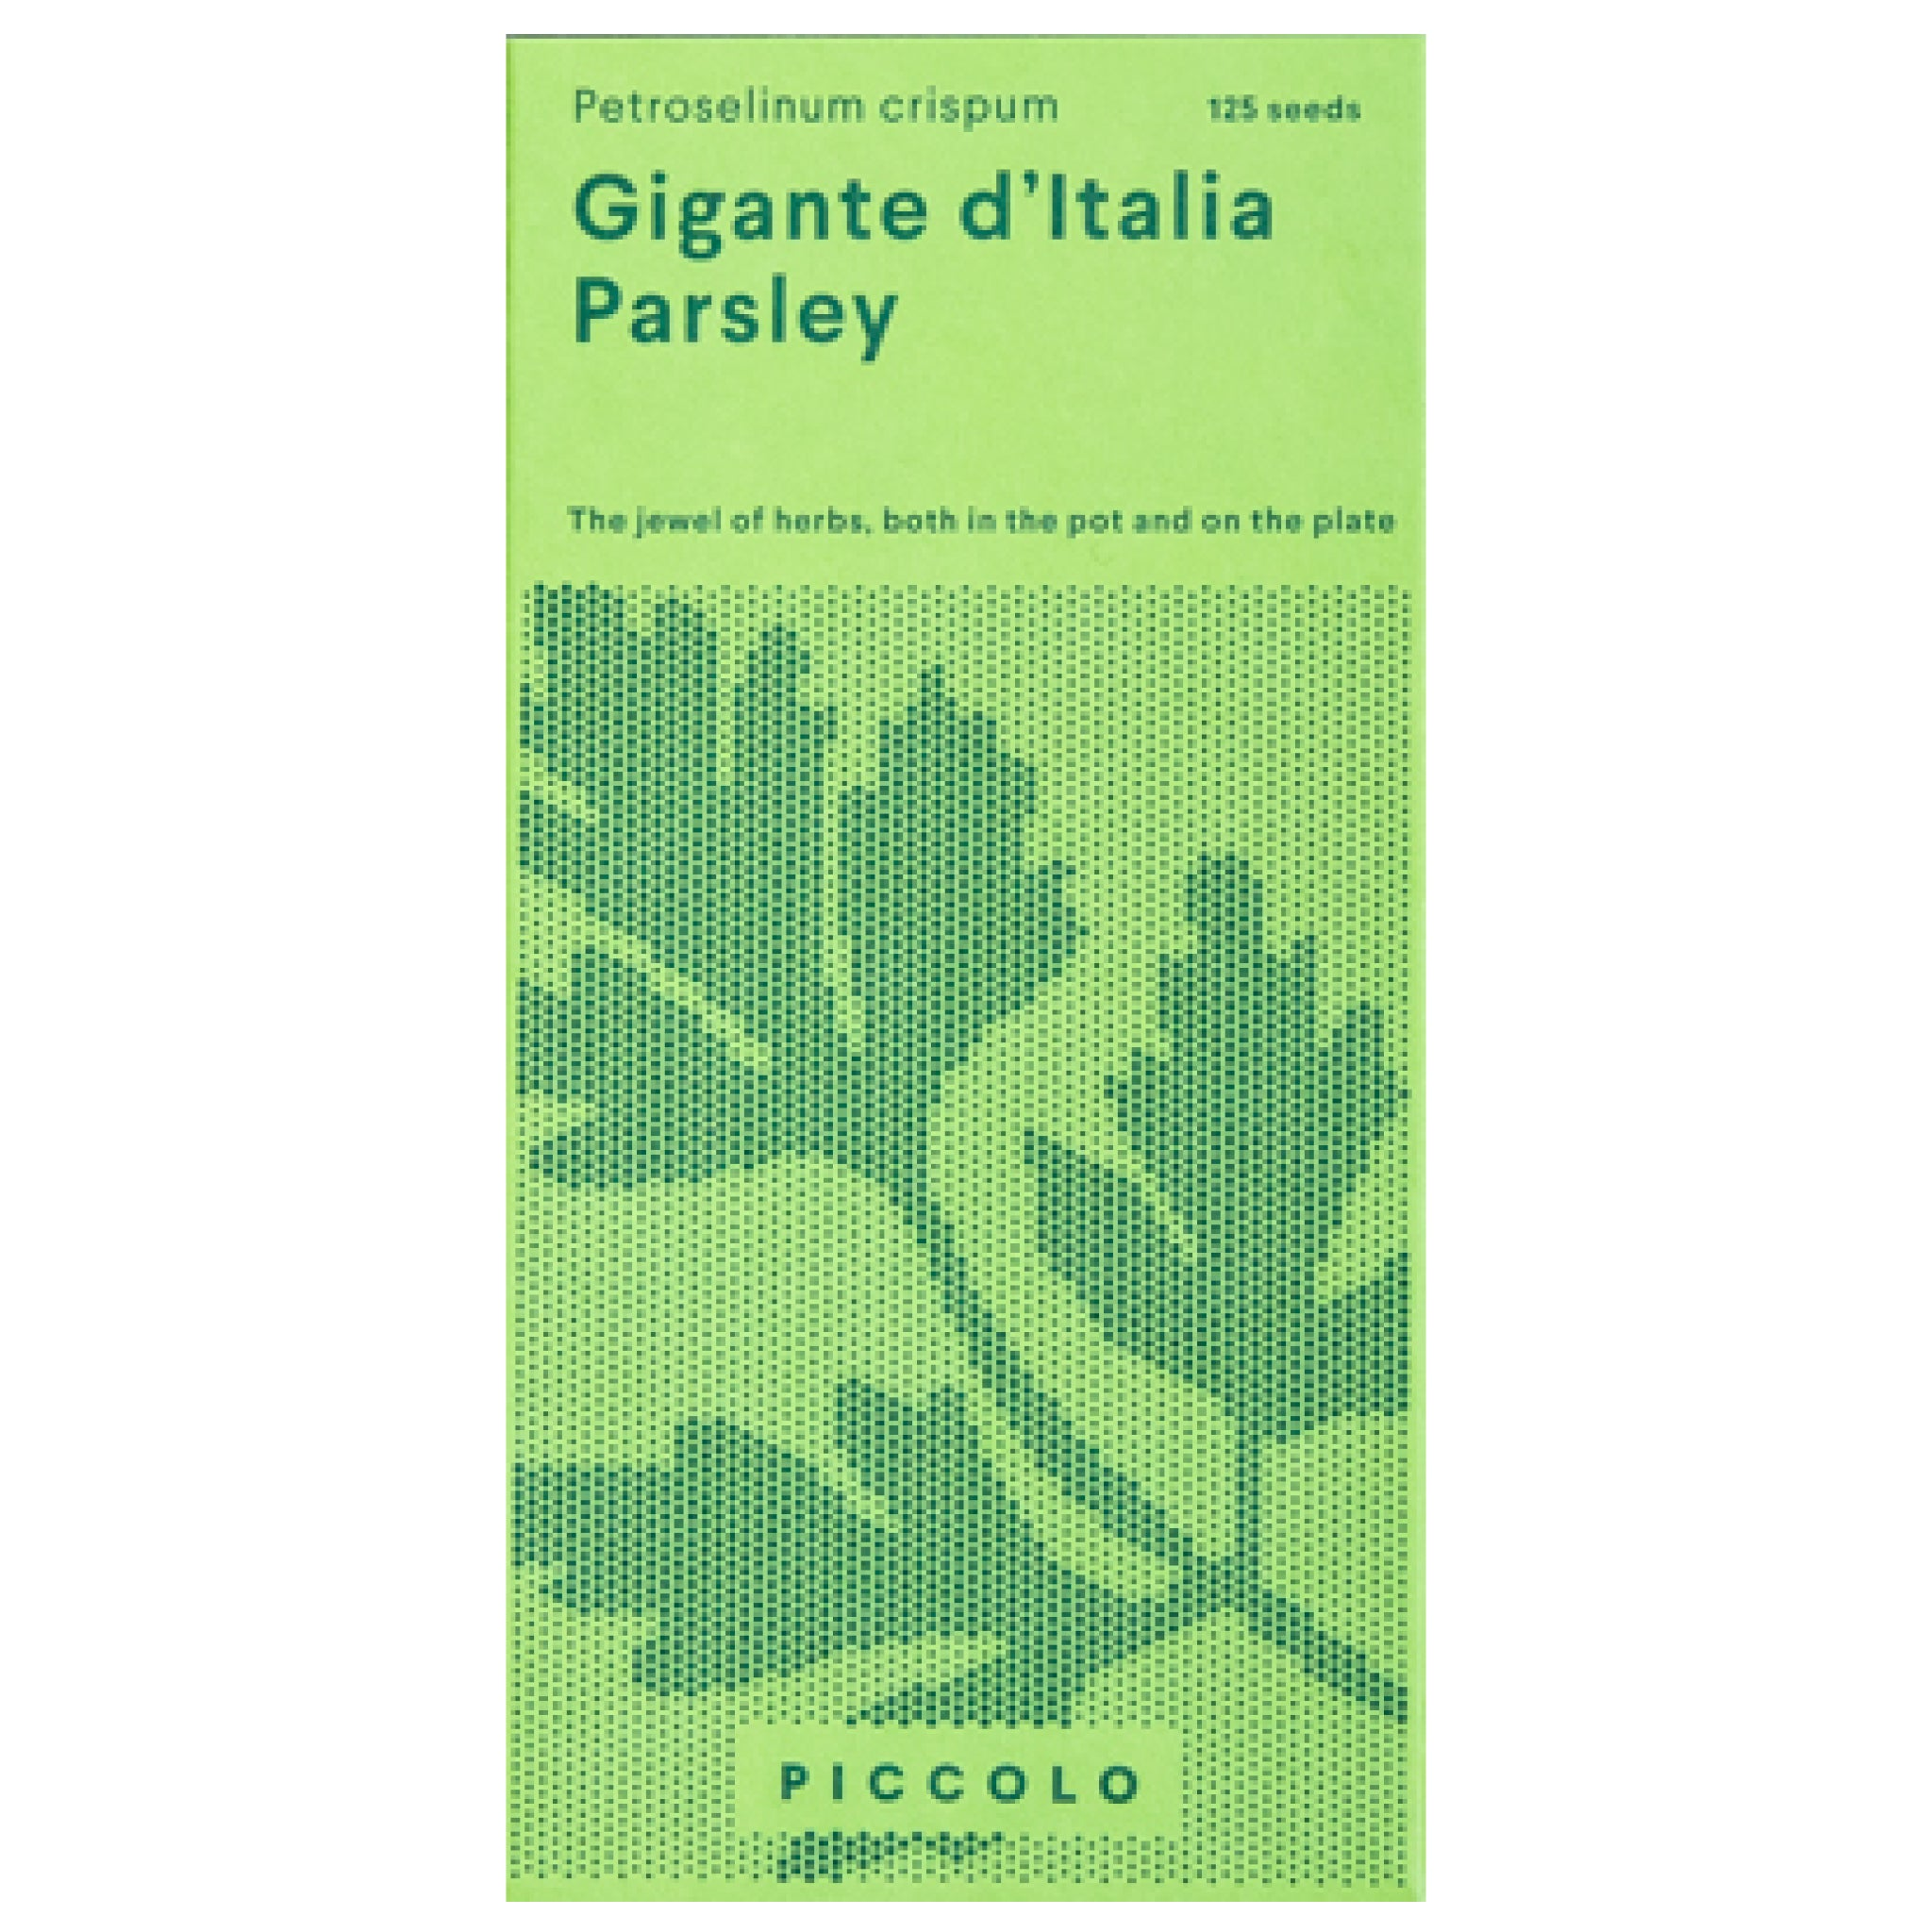 Gigante d'Italia Parsley Seeds